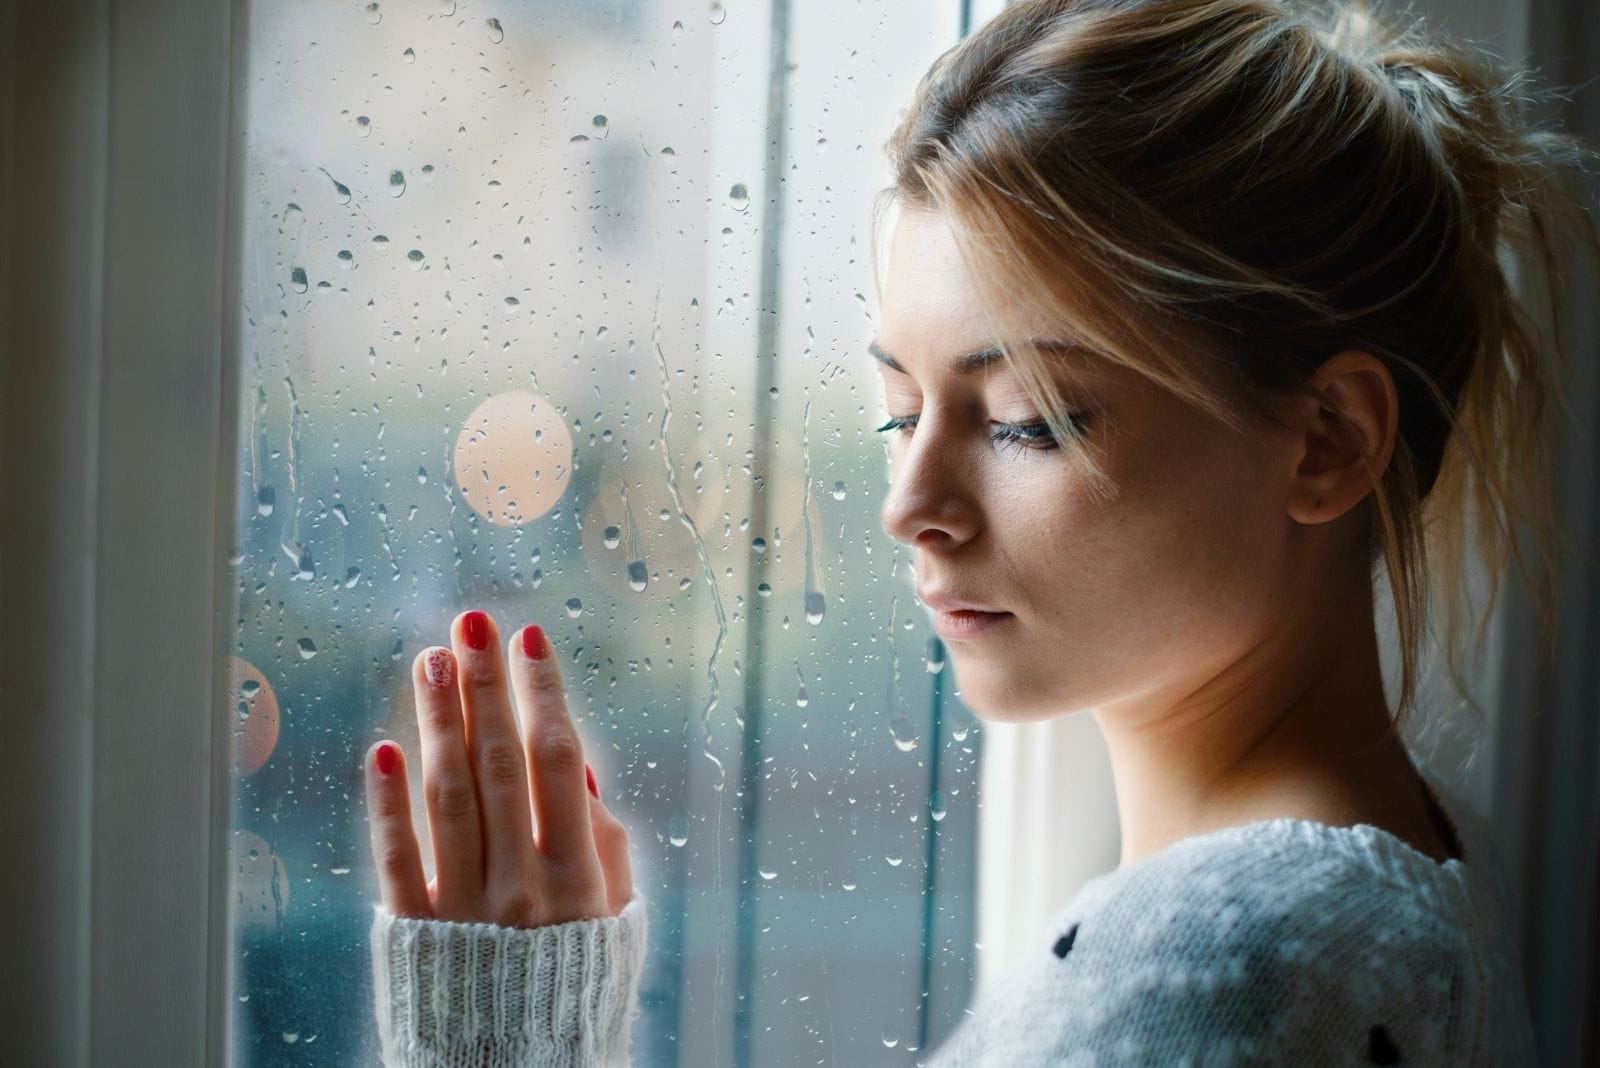 sad woman touching the glass windows with raindrops